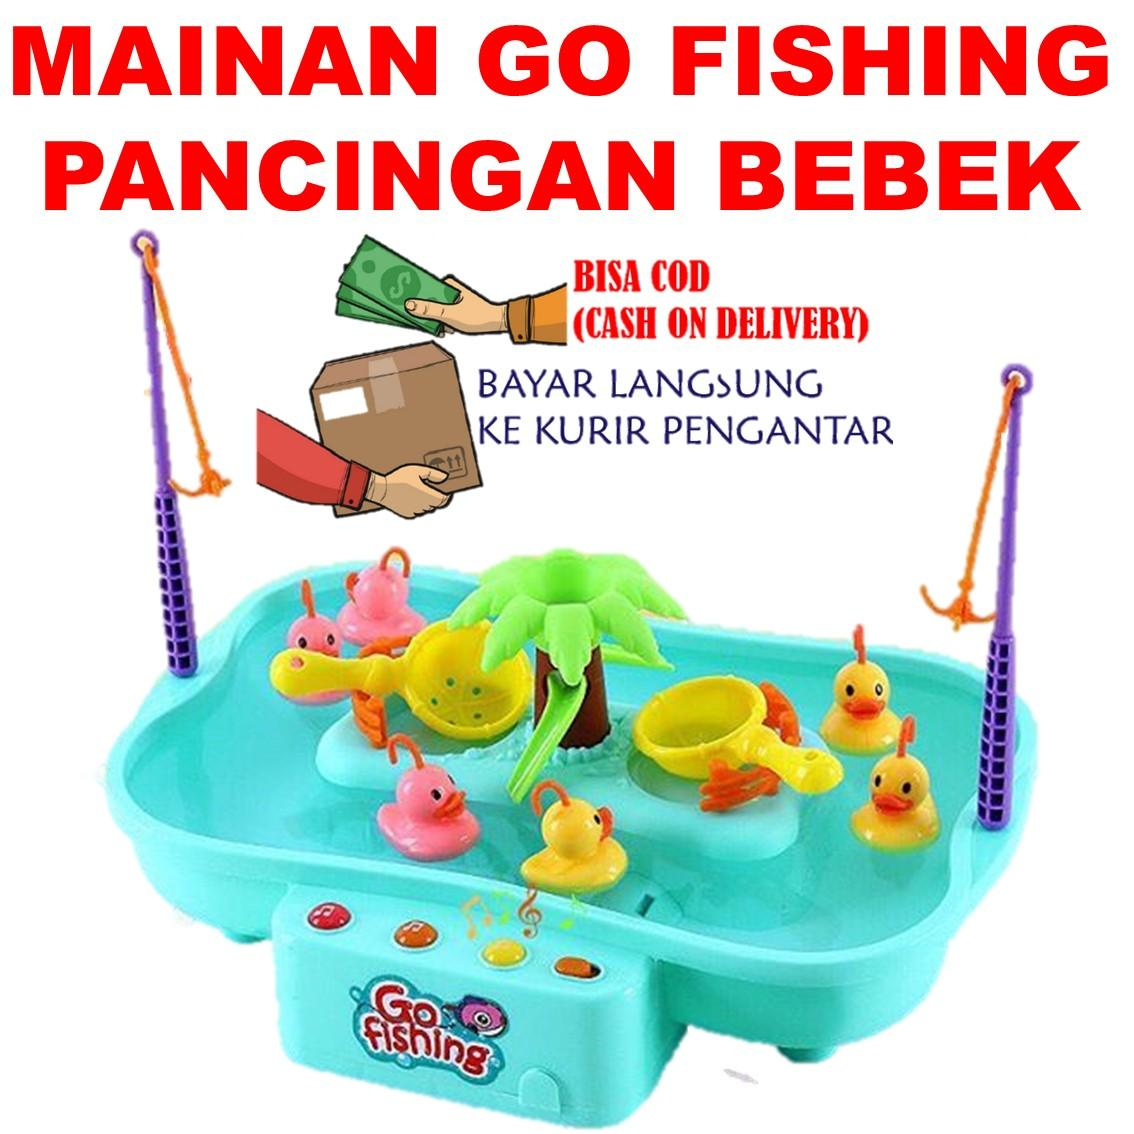 Go Fishing Game Board Play Set/ Mainan Pancingan Bebek By Mainan Pasir Ajaib.